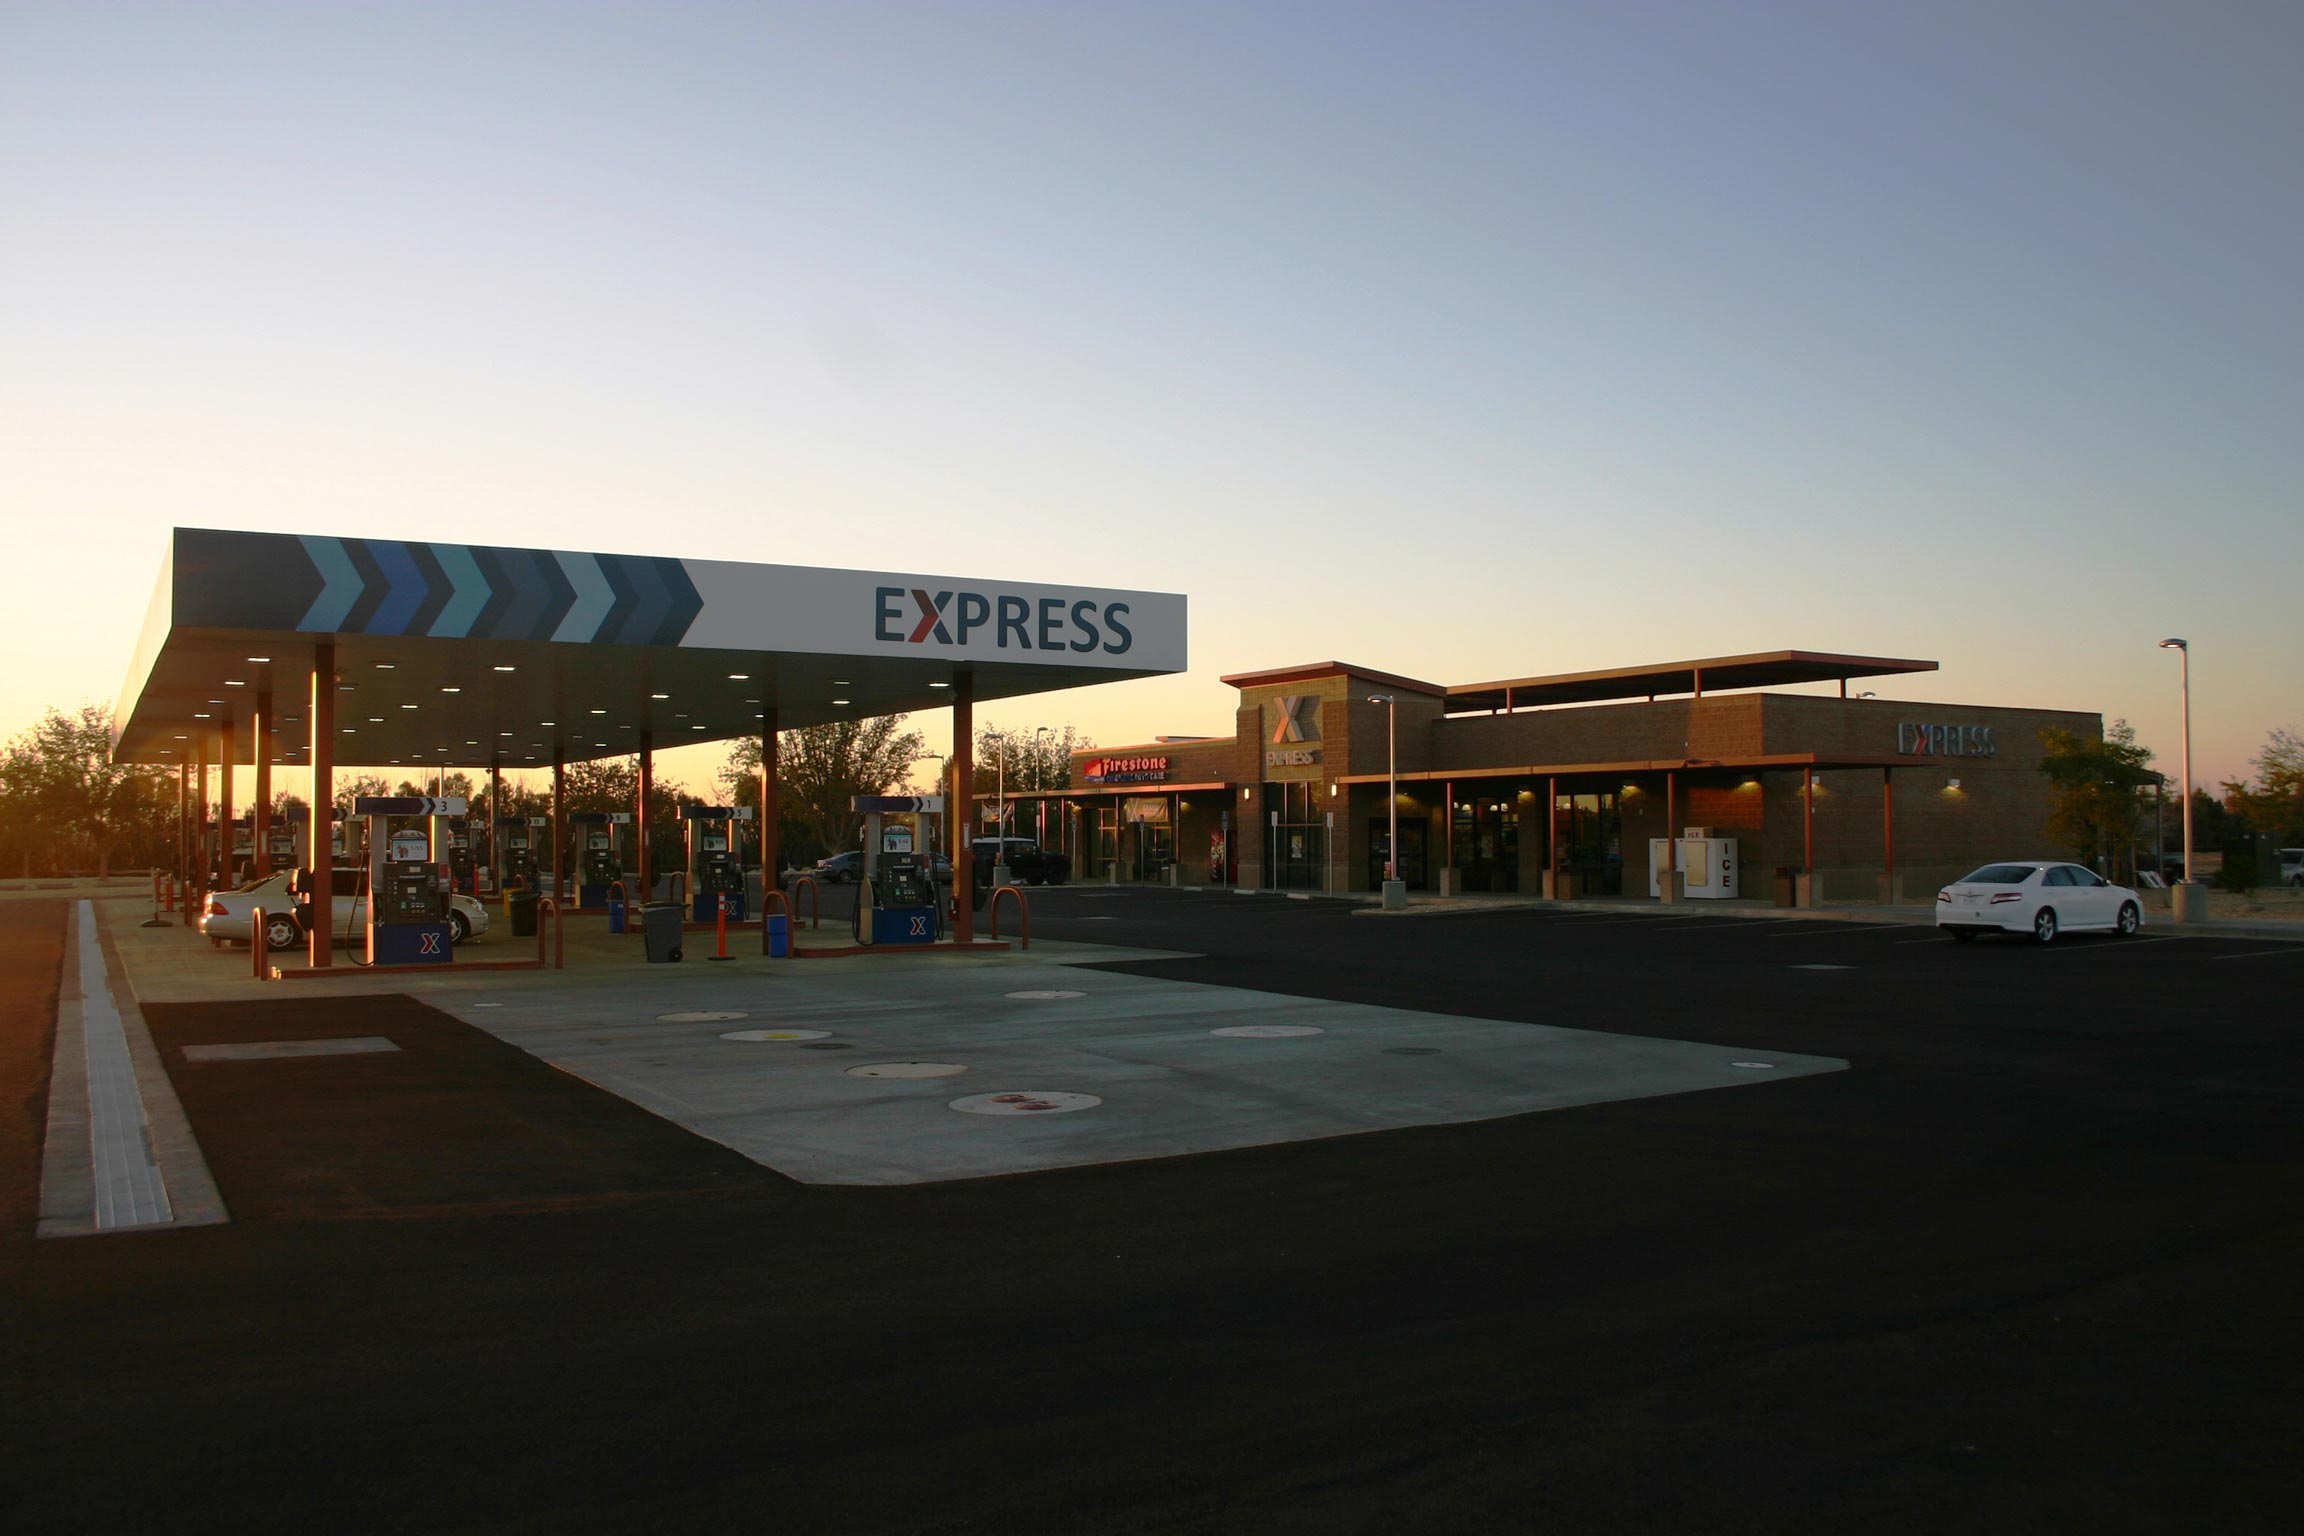 Army & Air Force Exchange Service, Edwards AFB Shoppette/Car Care Center